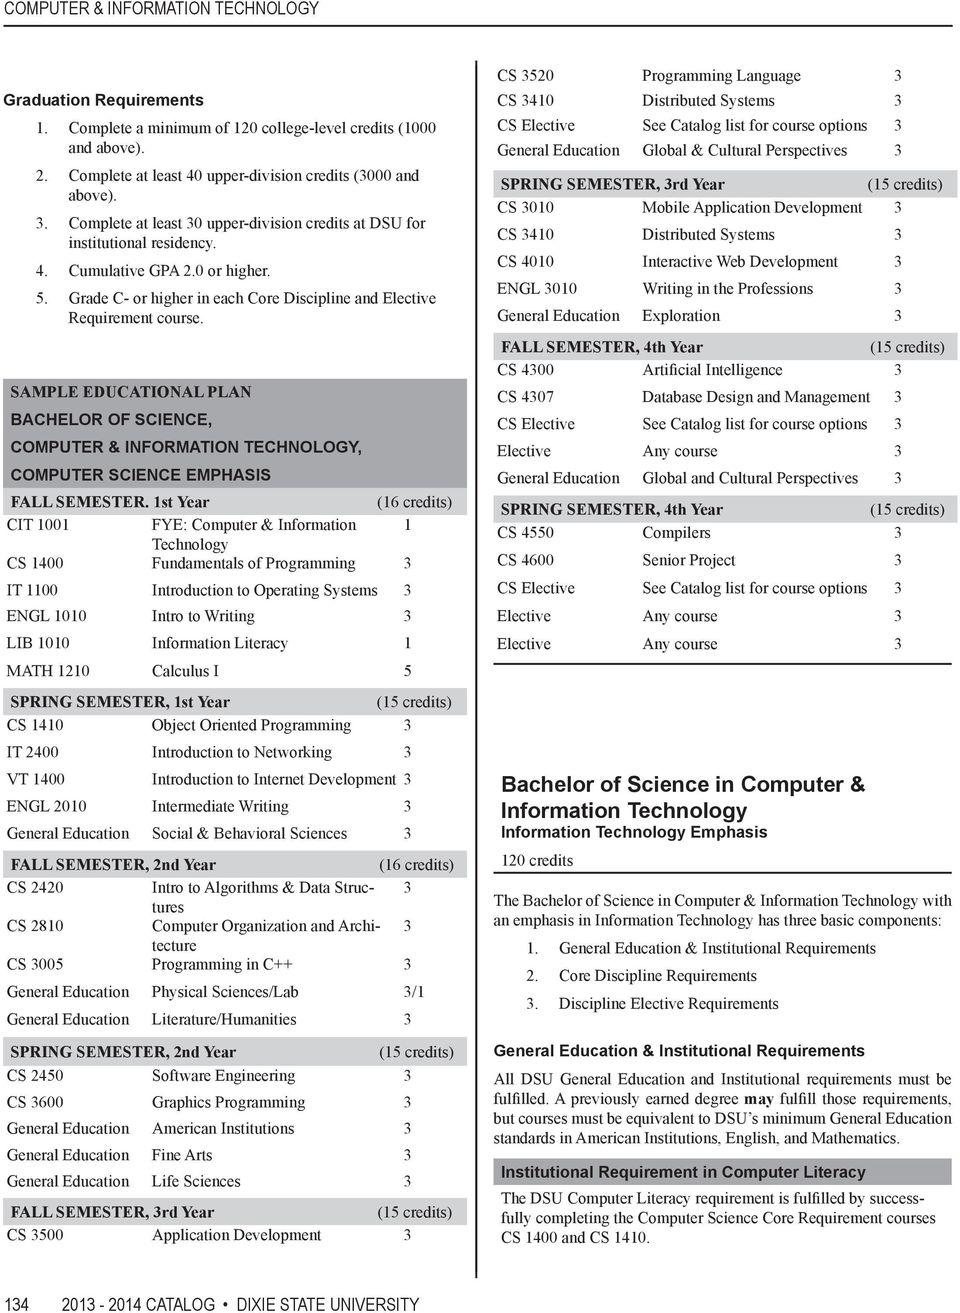 SAMPLE EDUCATIONAL PLAN BACHELOR OF SCIENCE, COMPUTER & INFORMATION TECHNOLOGY, COMPUTER SCIENCE EMPHASIS FALL SEMESTER.